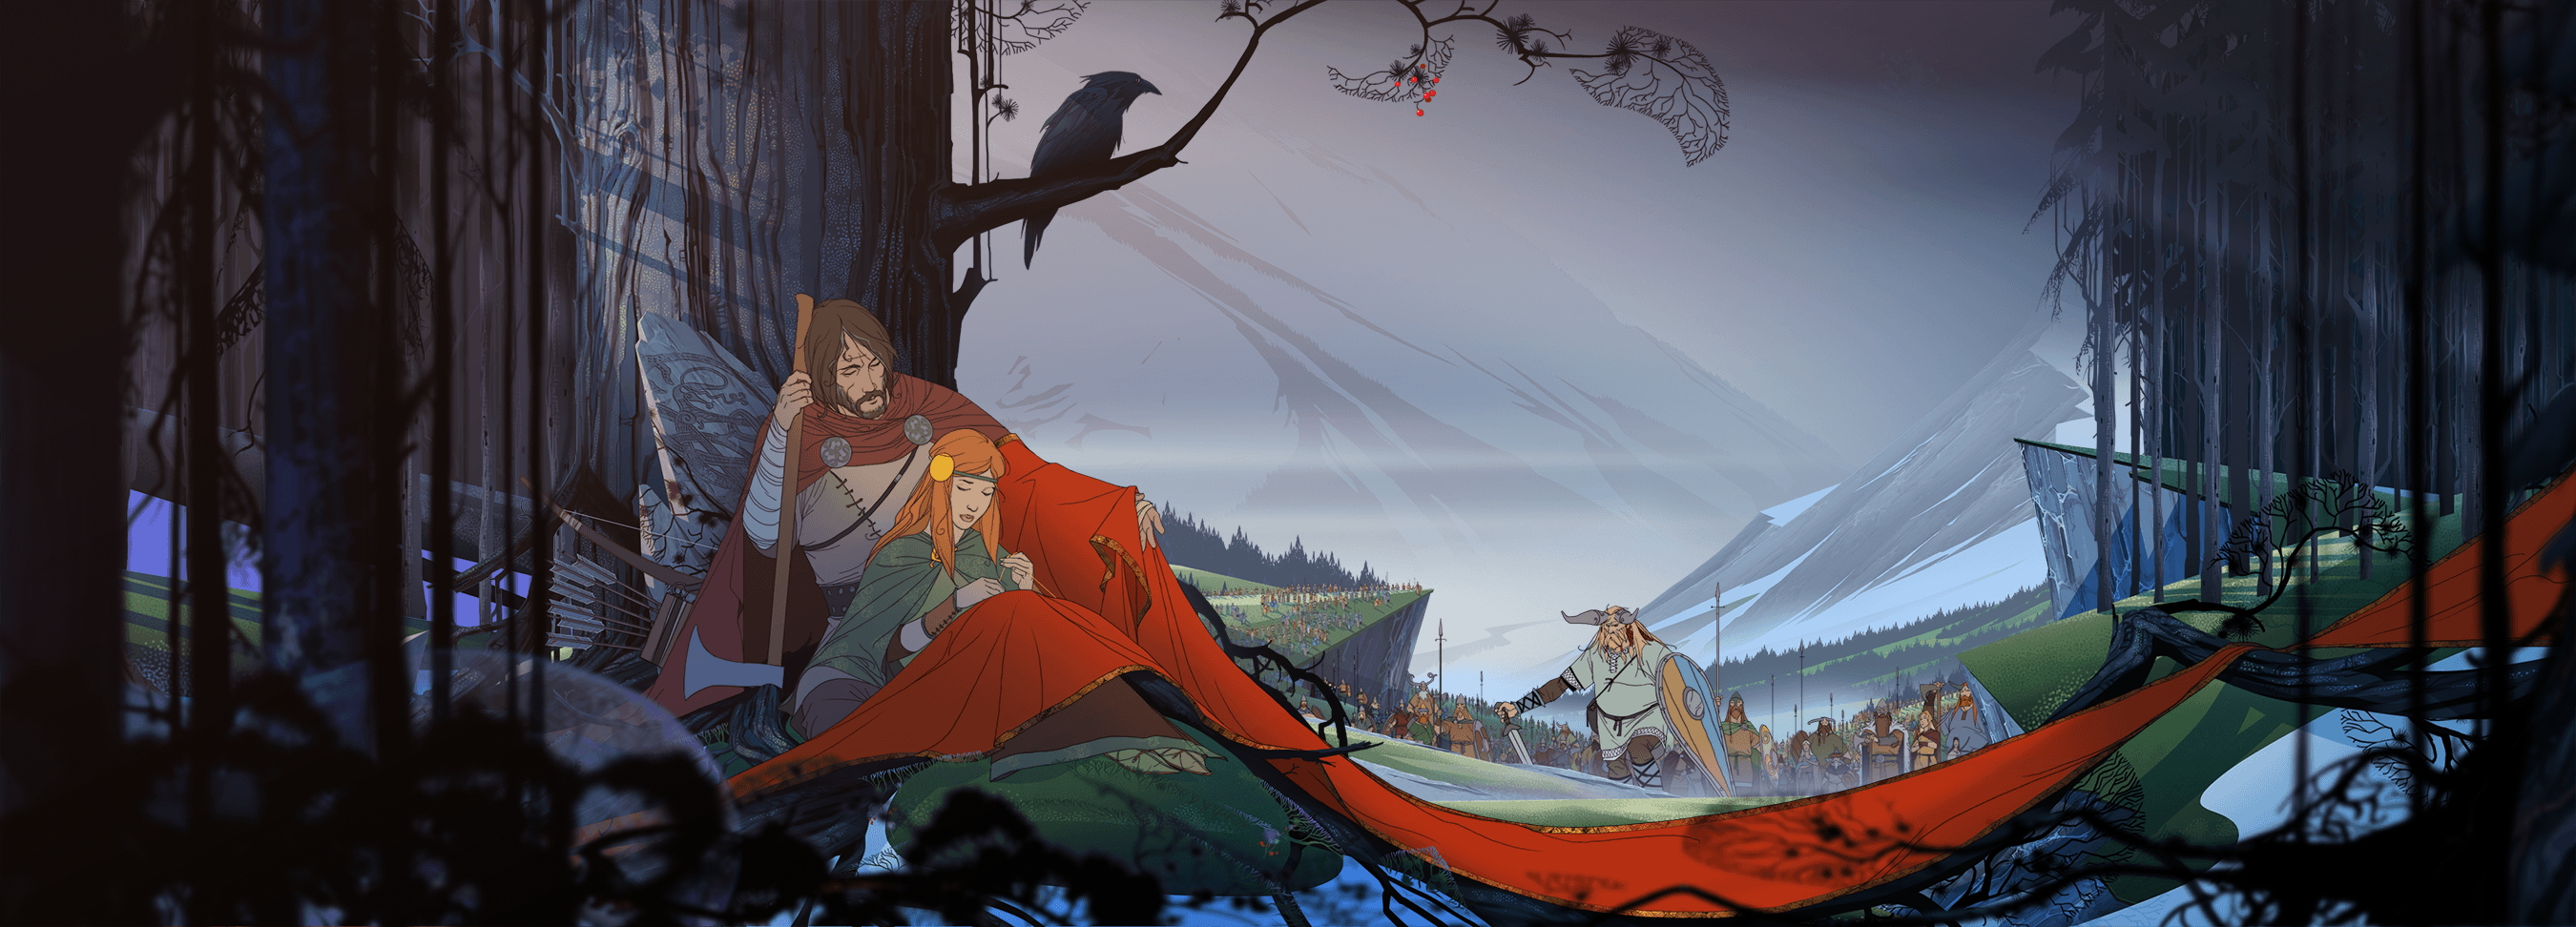 The Banner Saga: Alette and Rook encountering Dredge near Skogr. (Image: Stoic Studio)